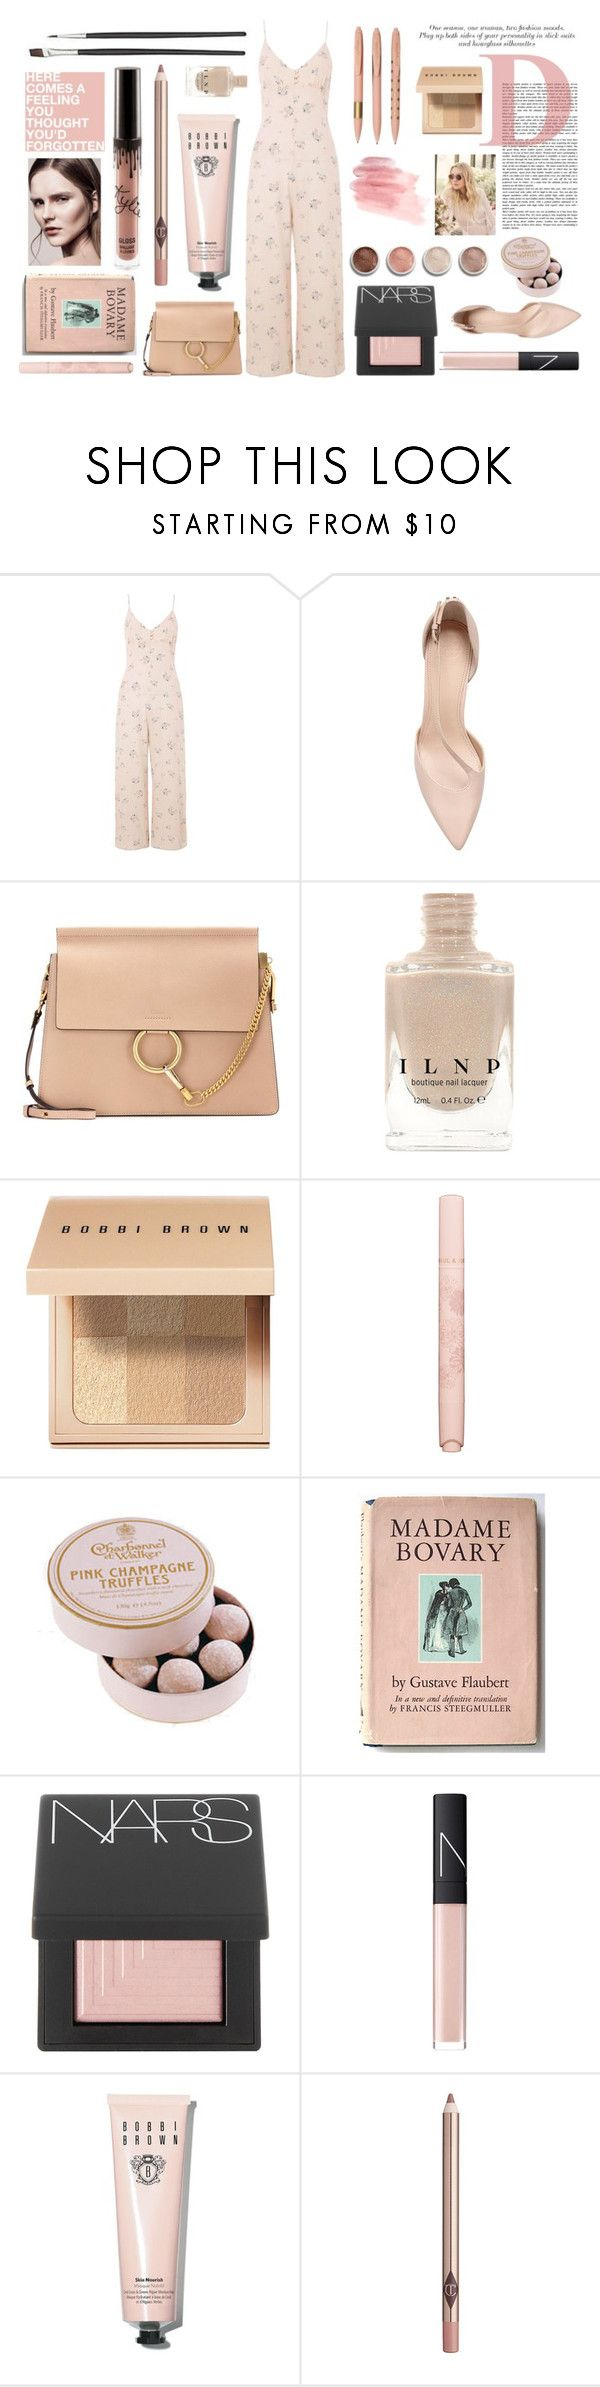 """Jumpsuit 1/3"" by seetheotheroceans ❤ liked on Polyvore featuring Nobody's Child, Chloé, Bobbi Brown Cosmetics, Terre Mère, Paul & Joe, POSH, Jimmy Choo, NARS Cosmetics and Charlotte Tilbury"